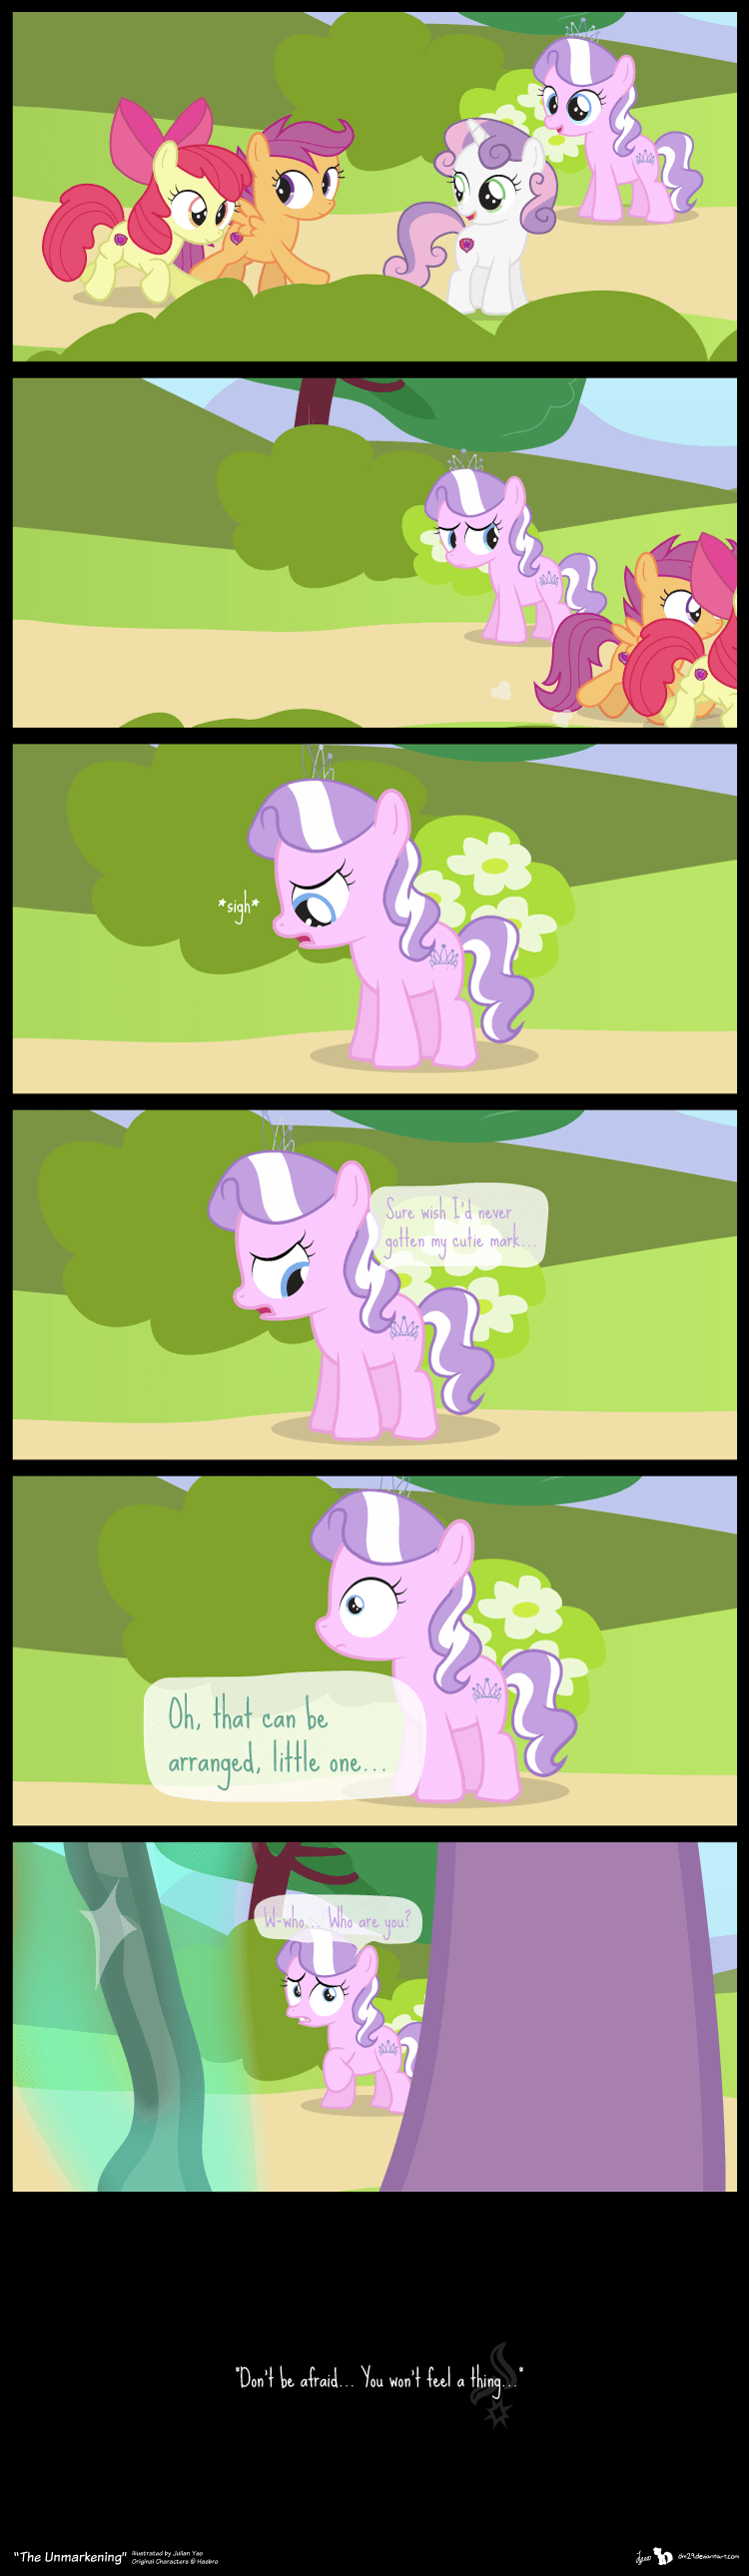 diamond tiara,wishes,cutie mark crusaders